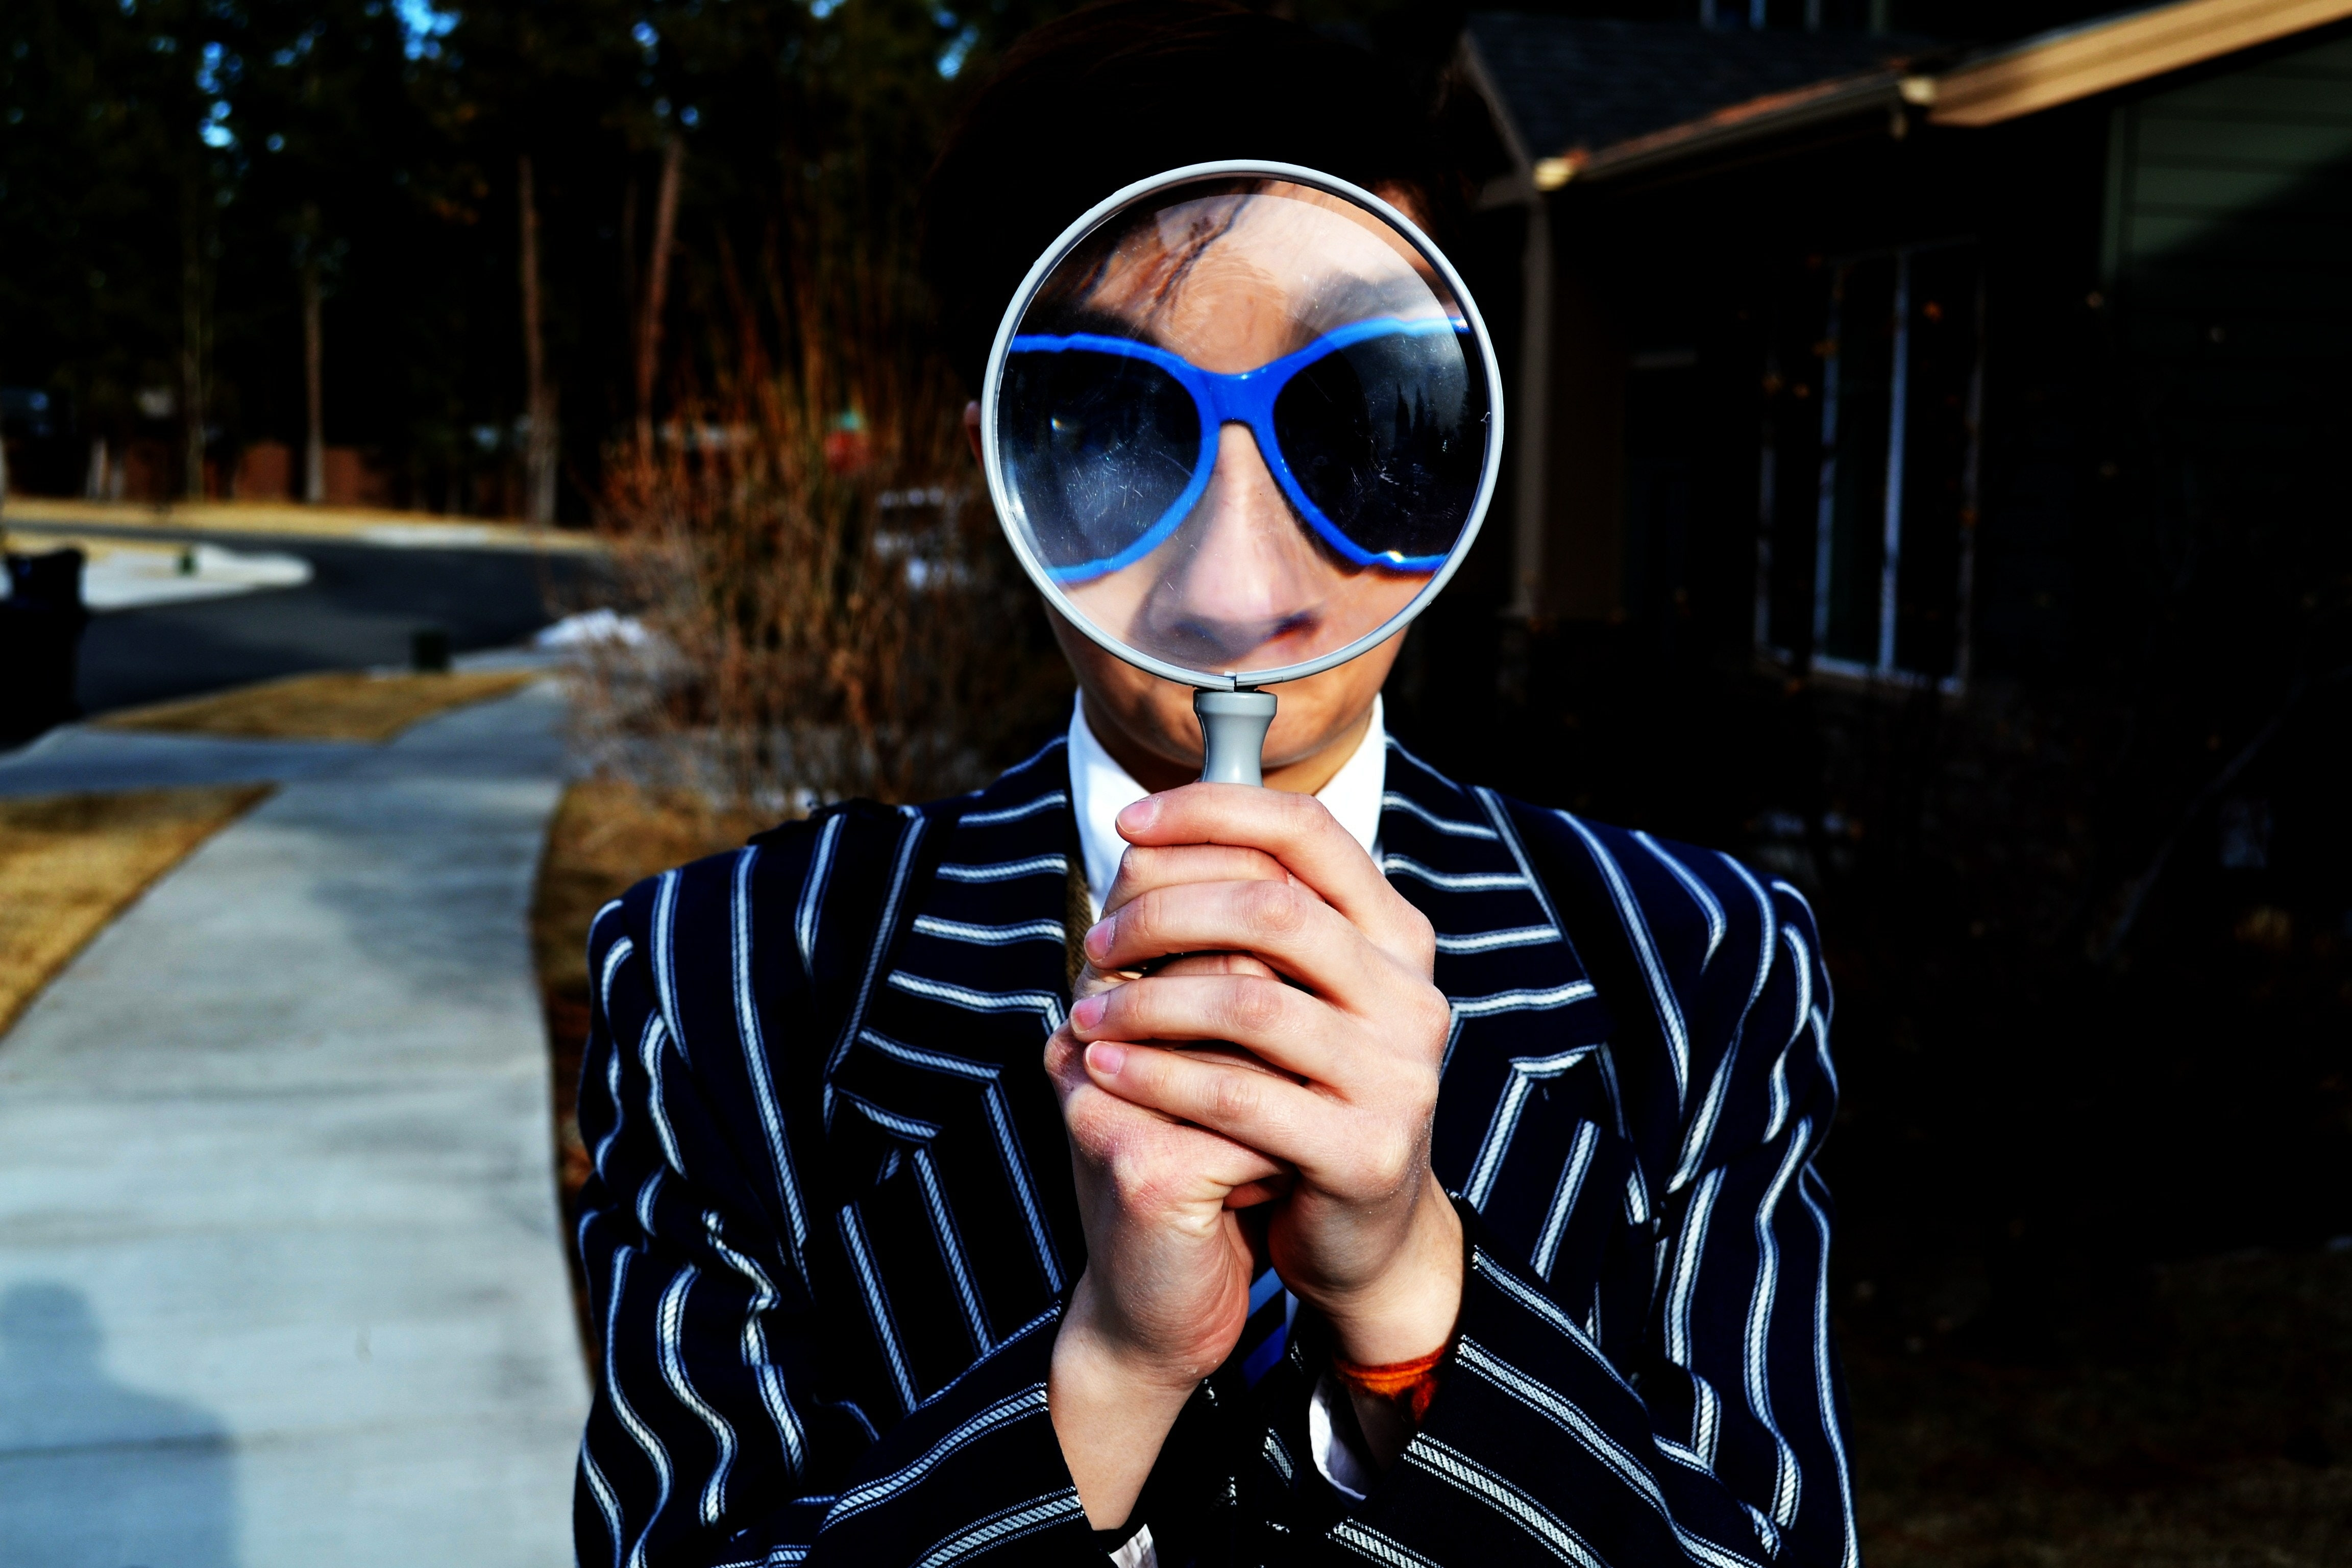 A man in a suit wearing blue glasses holding a magnifying glass up to his face.